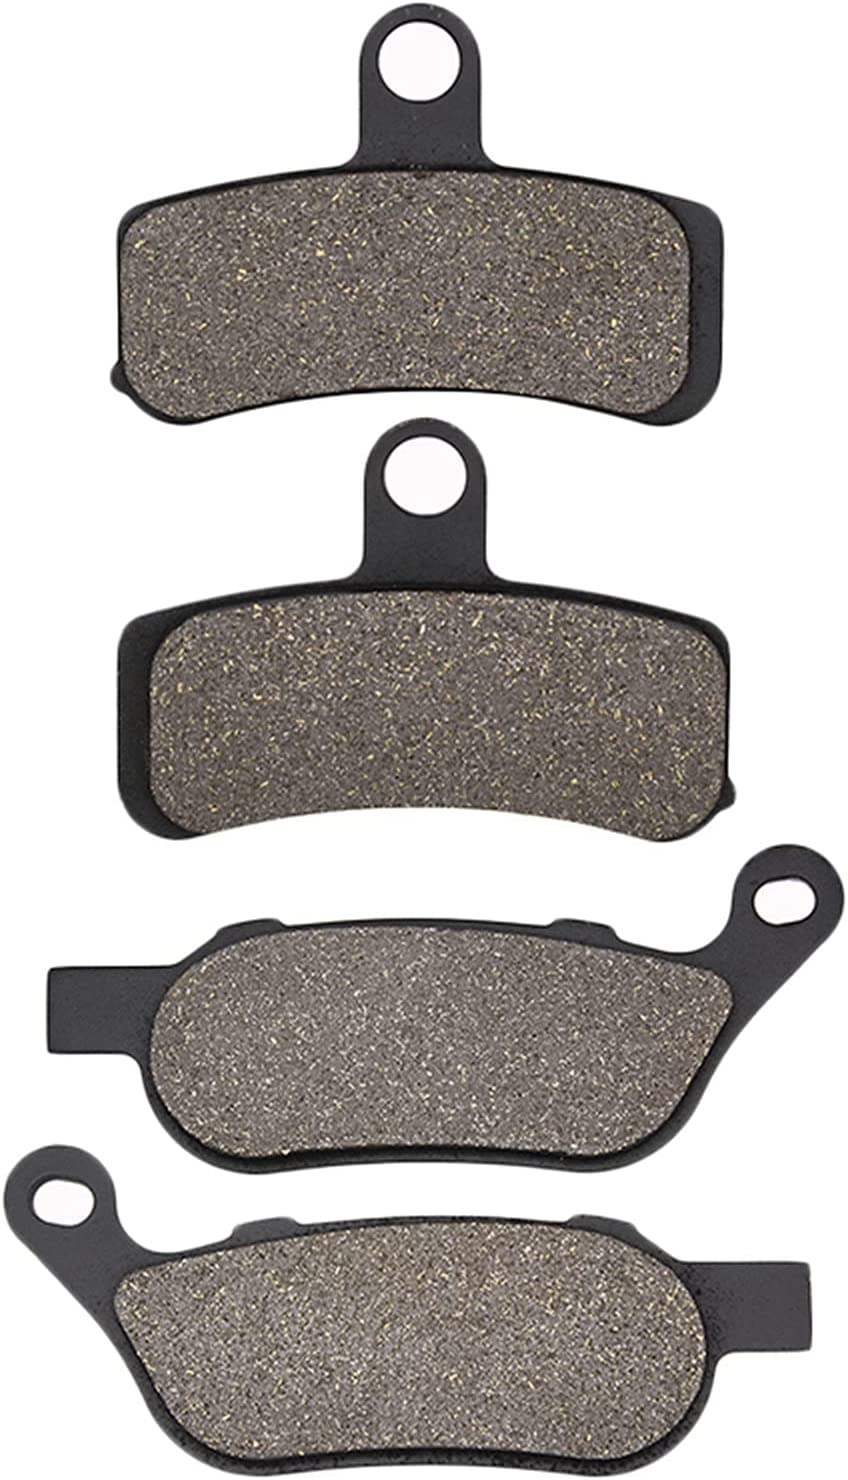 ZFSM Brake Pads for H-Arley FXD FXDC FLD F FXDWG FXDB Street Bob In Today's only a popularity